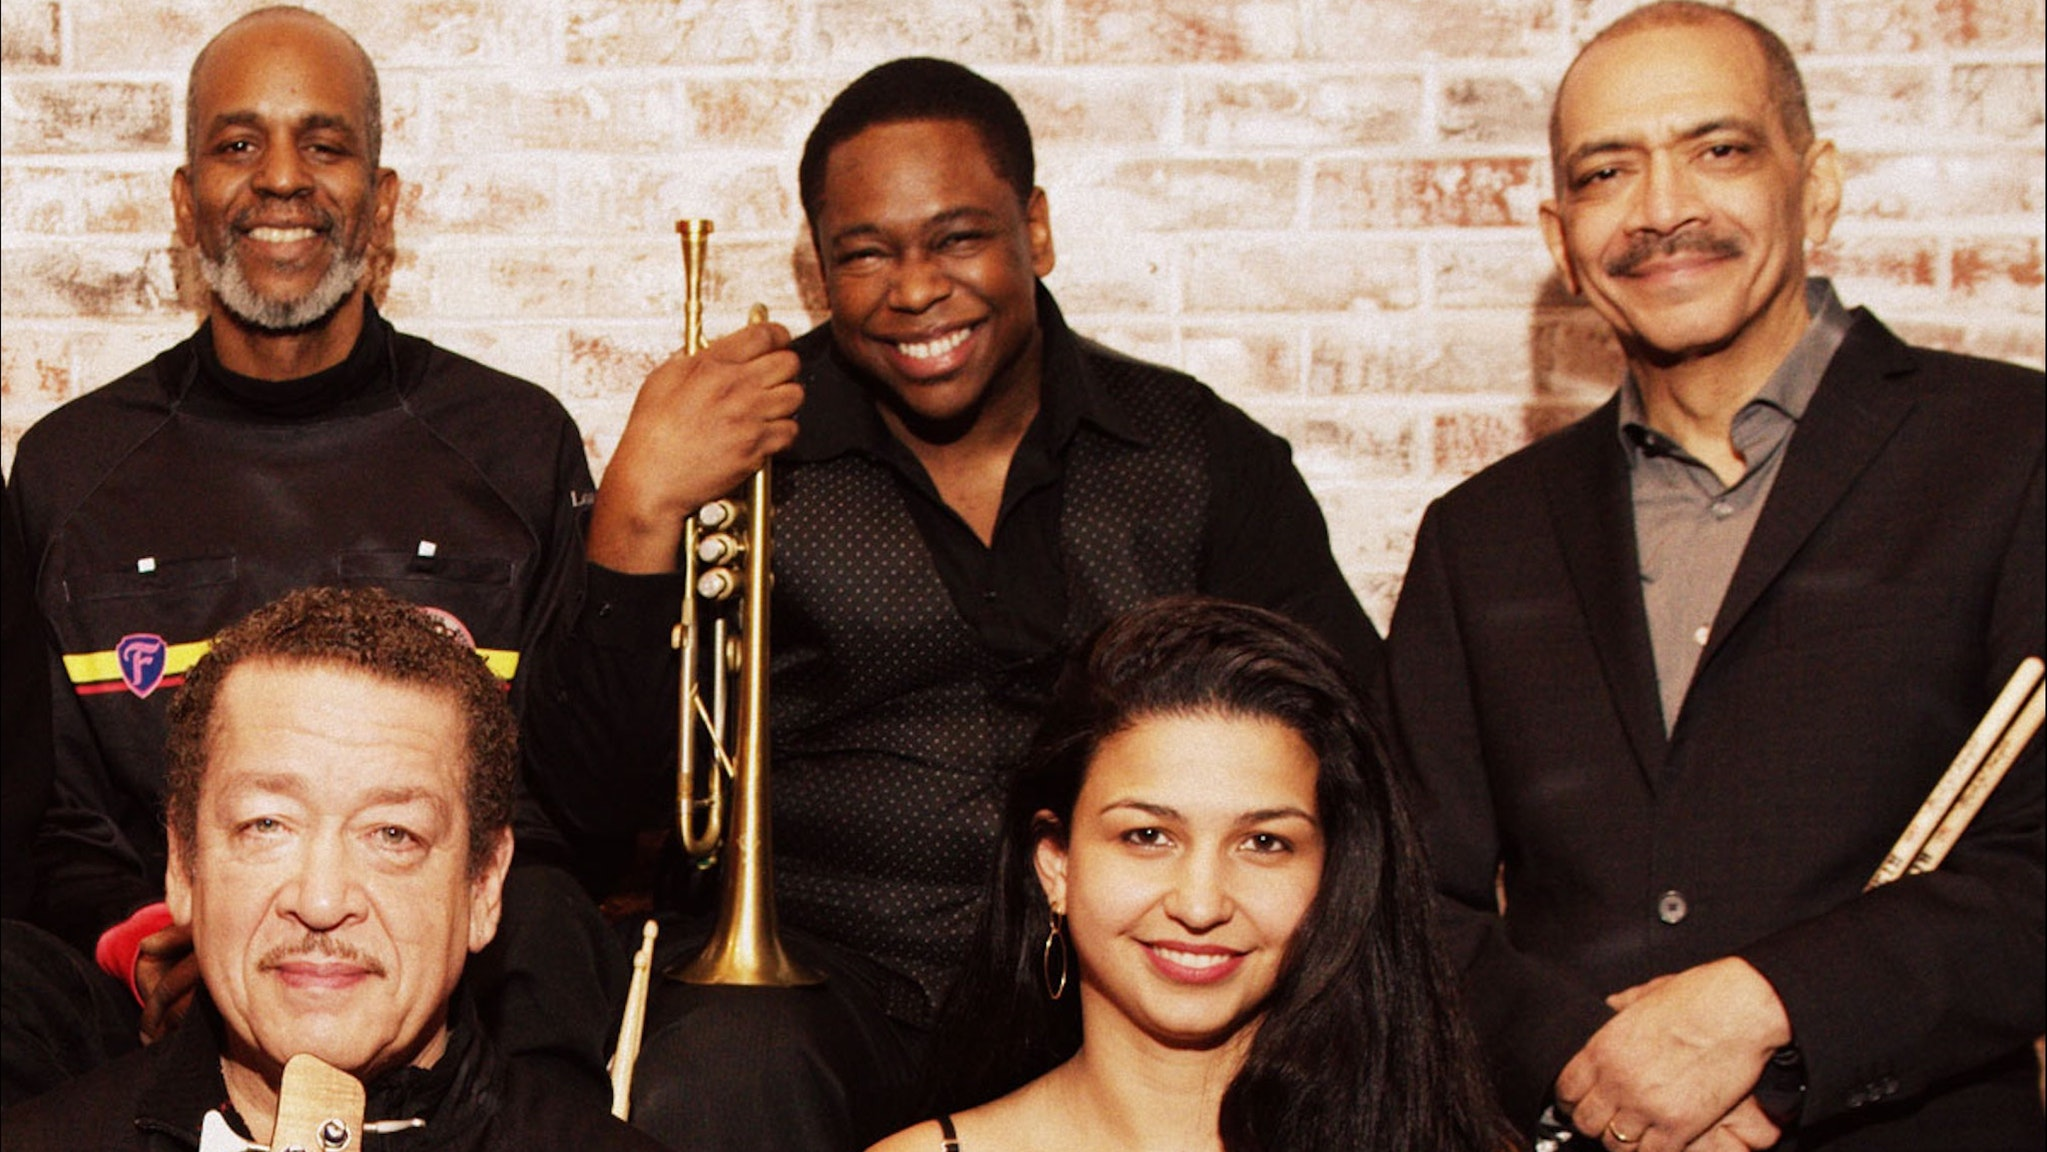 The Dizzy Gillespie Arfocuban experience will hit bird's this February